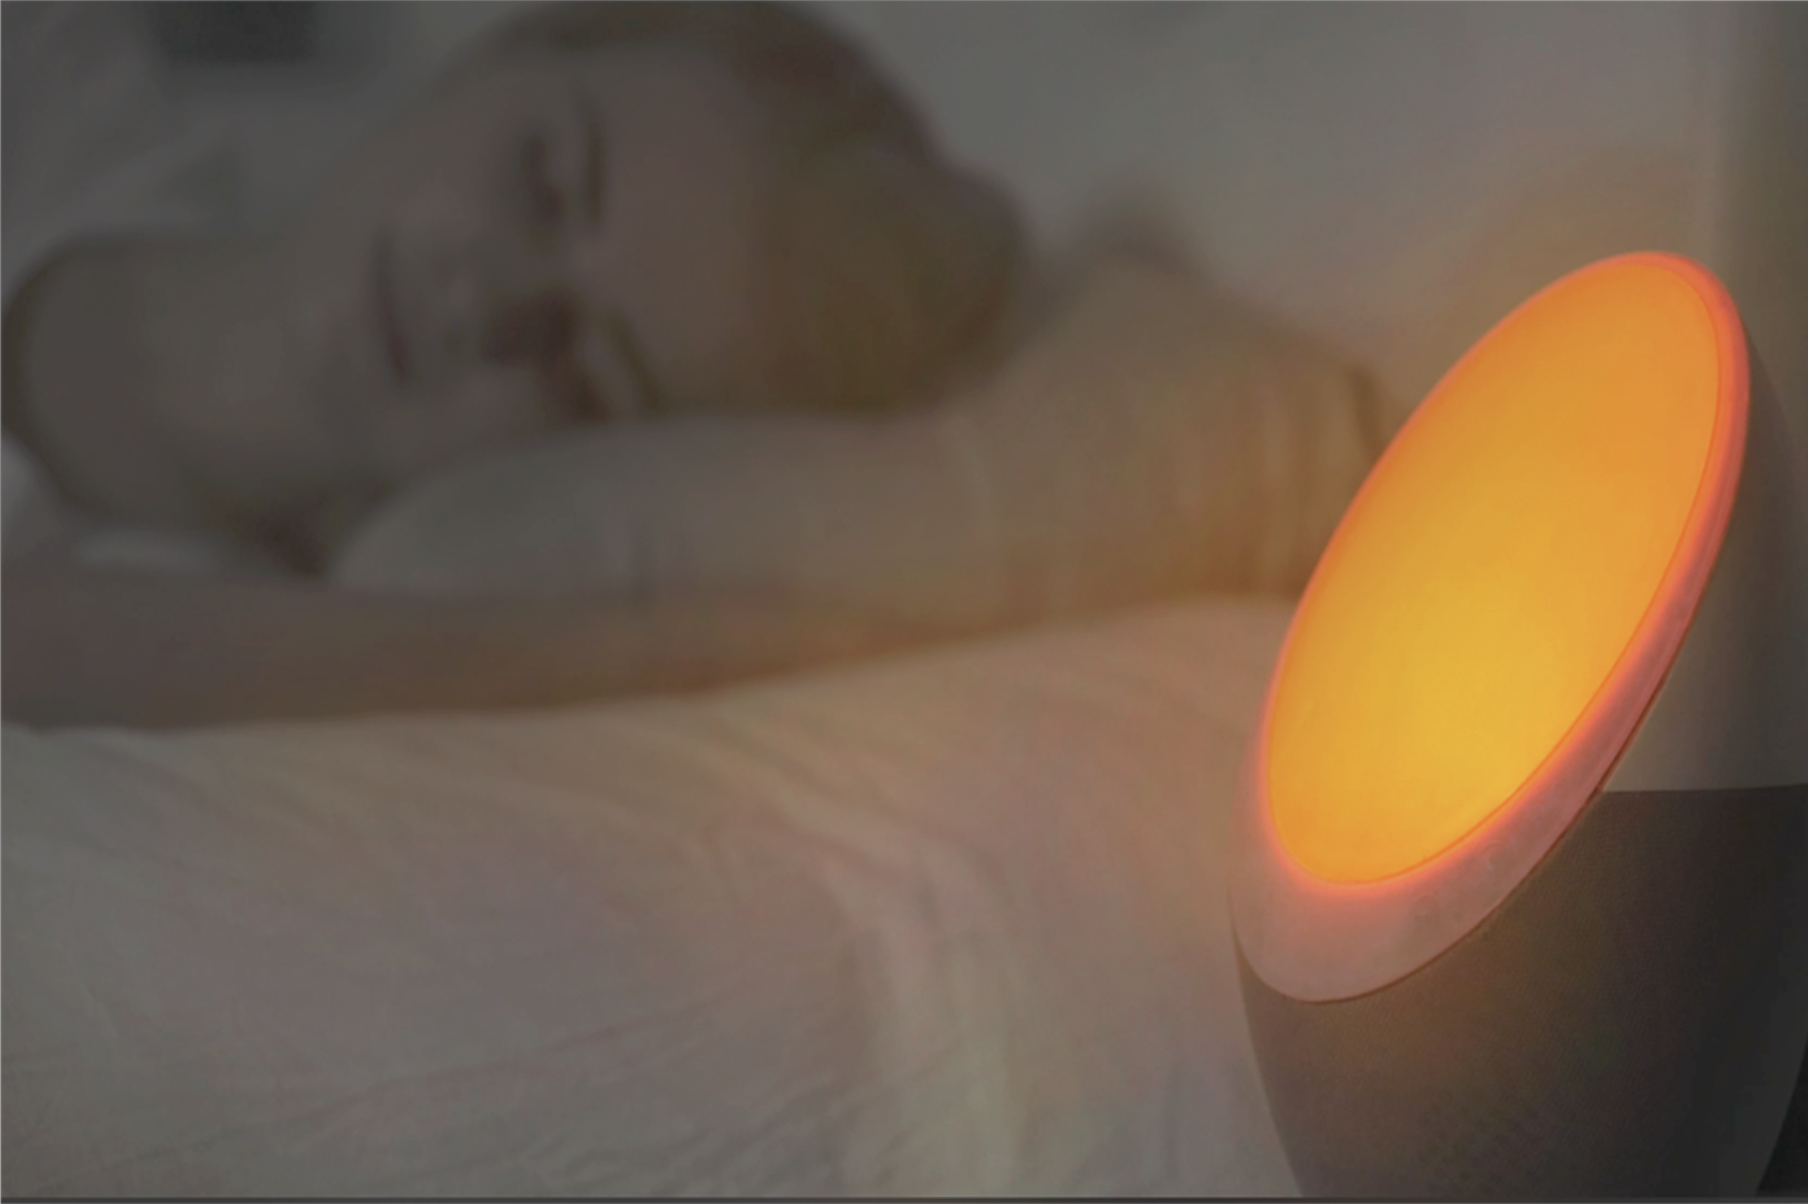 11:00 PM - Blue / white light eliminating and nerve calming red light helps stimulate melatonin production which regulates sleep patterns.Selections of calm and relaxing white noise or natural sounds help you relax into deep sleep cycle while our smart sensor monitors and records your biometric data.